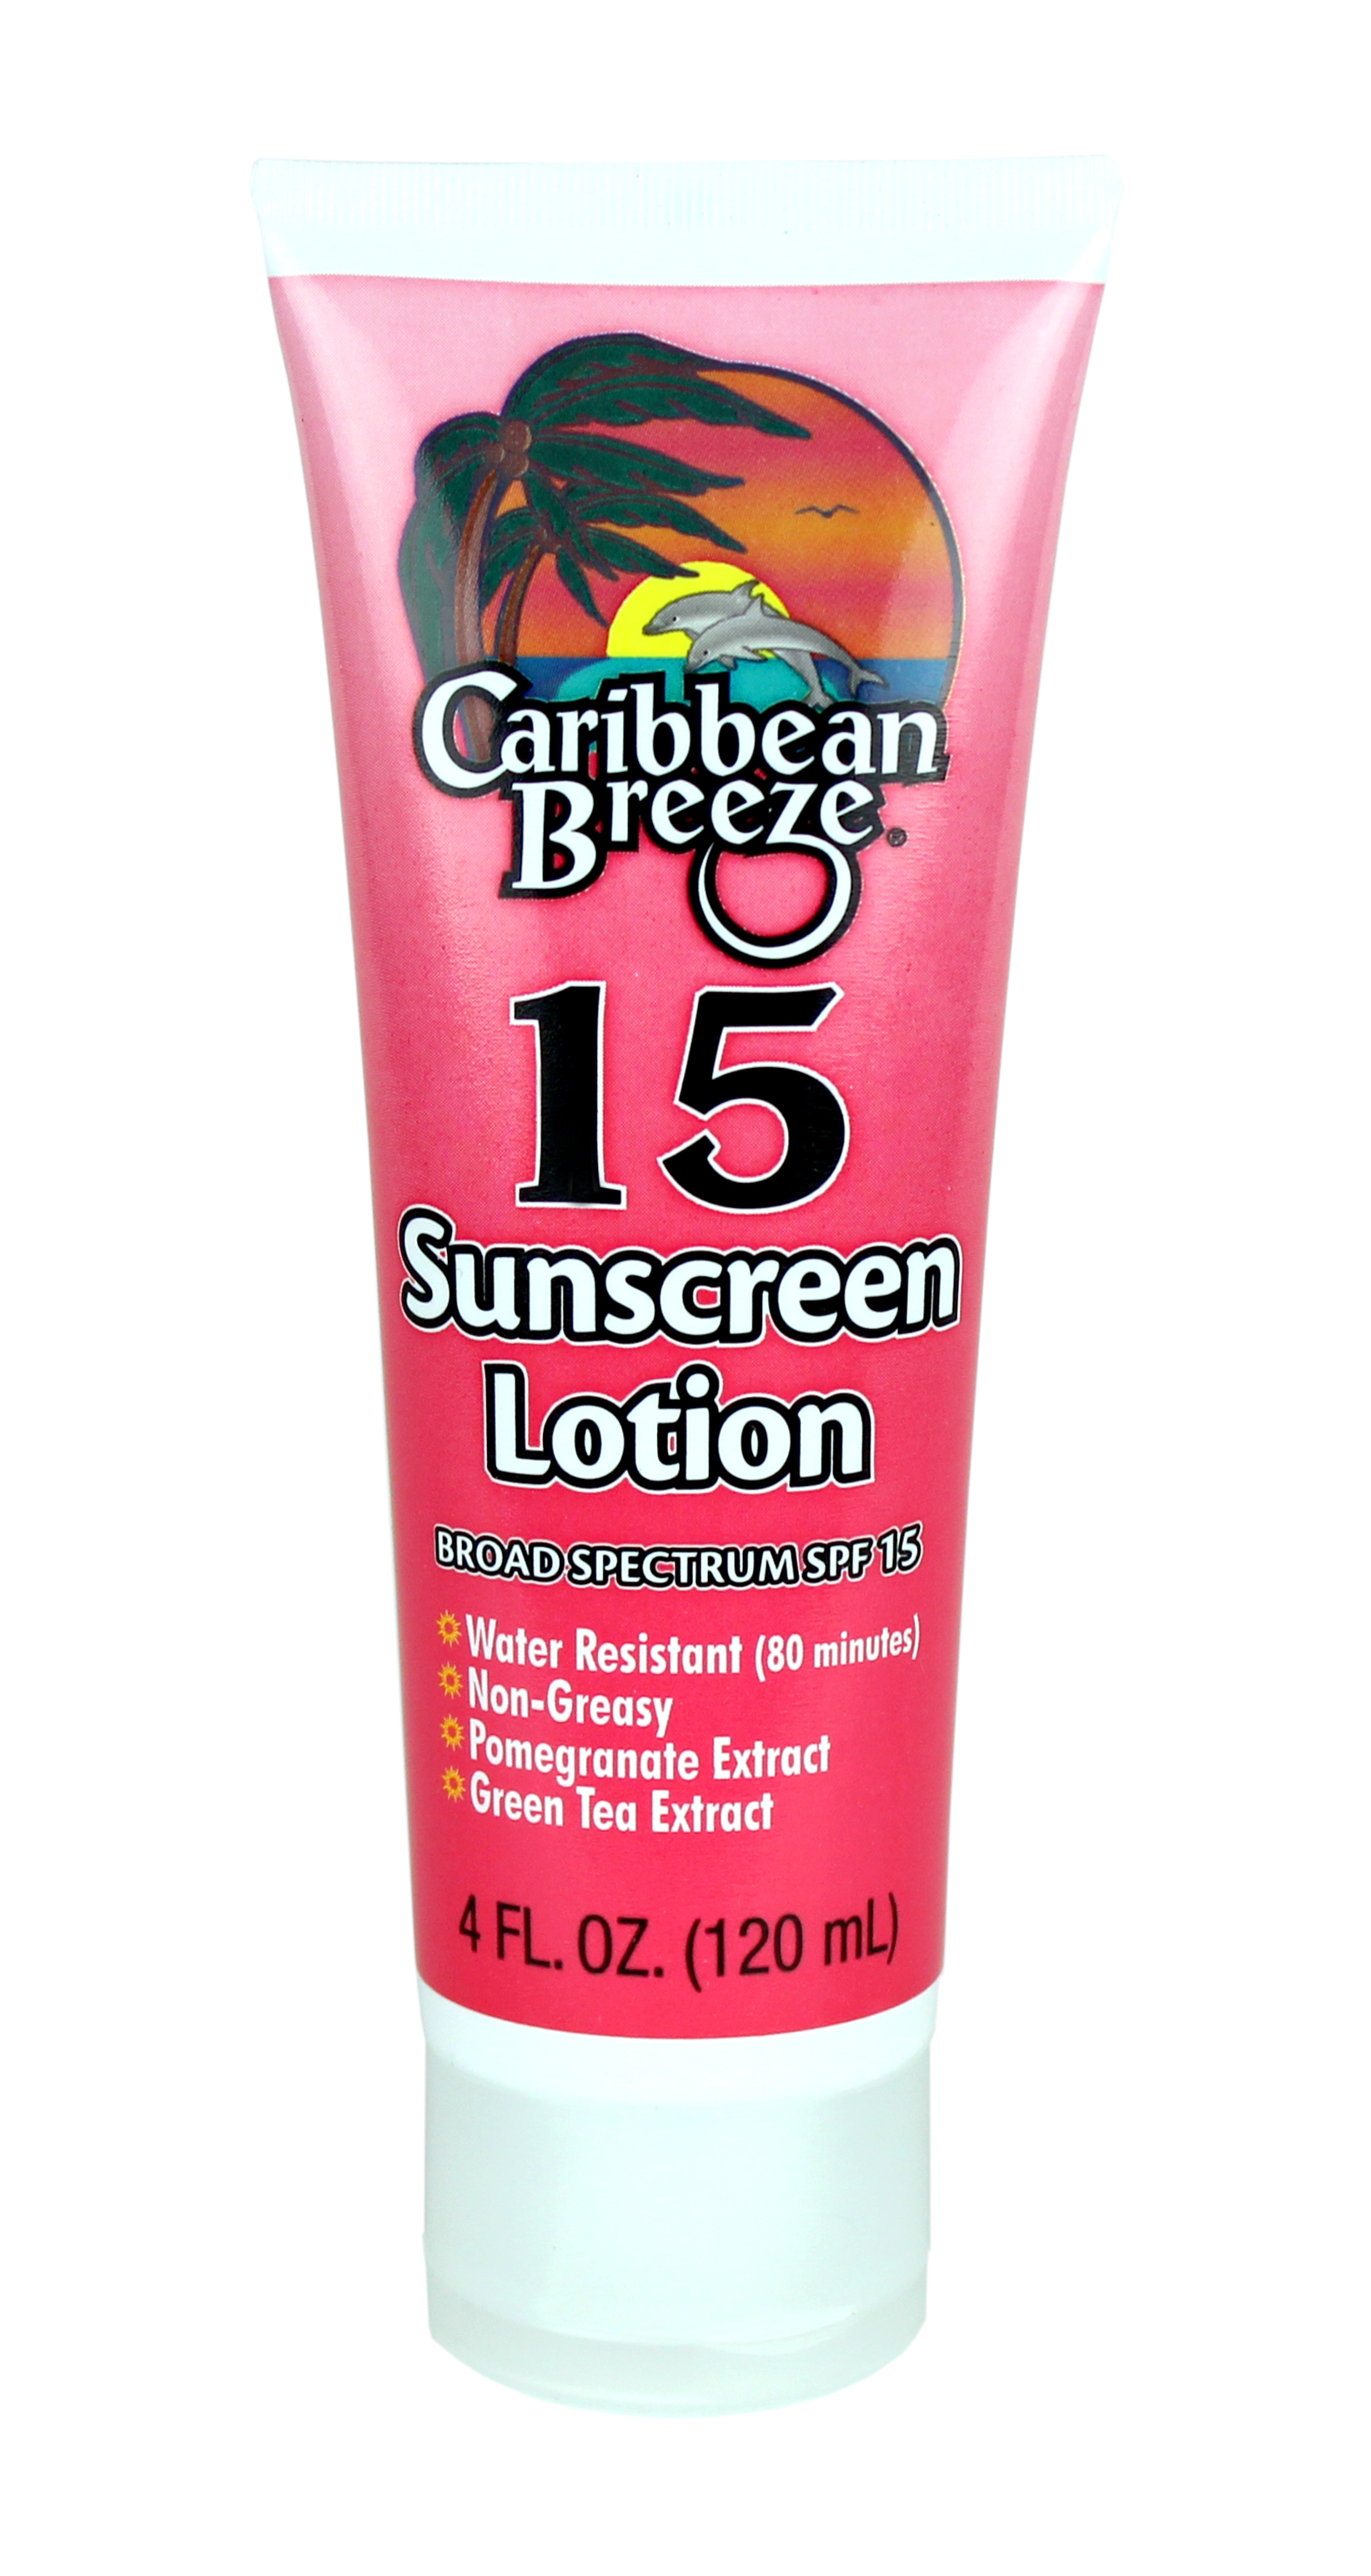 Caribbean Breeze SunScreen Lotion SPF 15